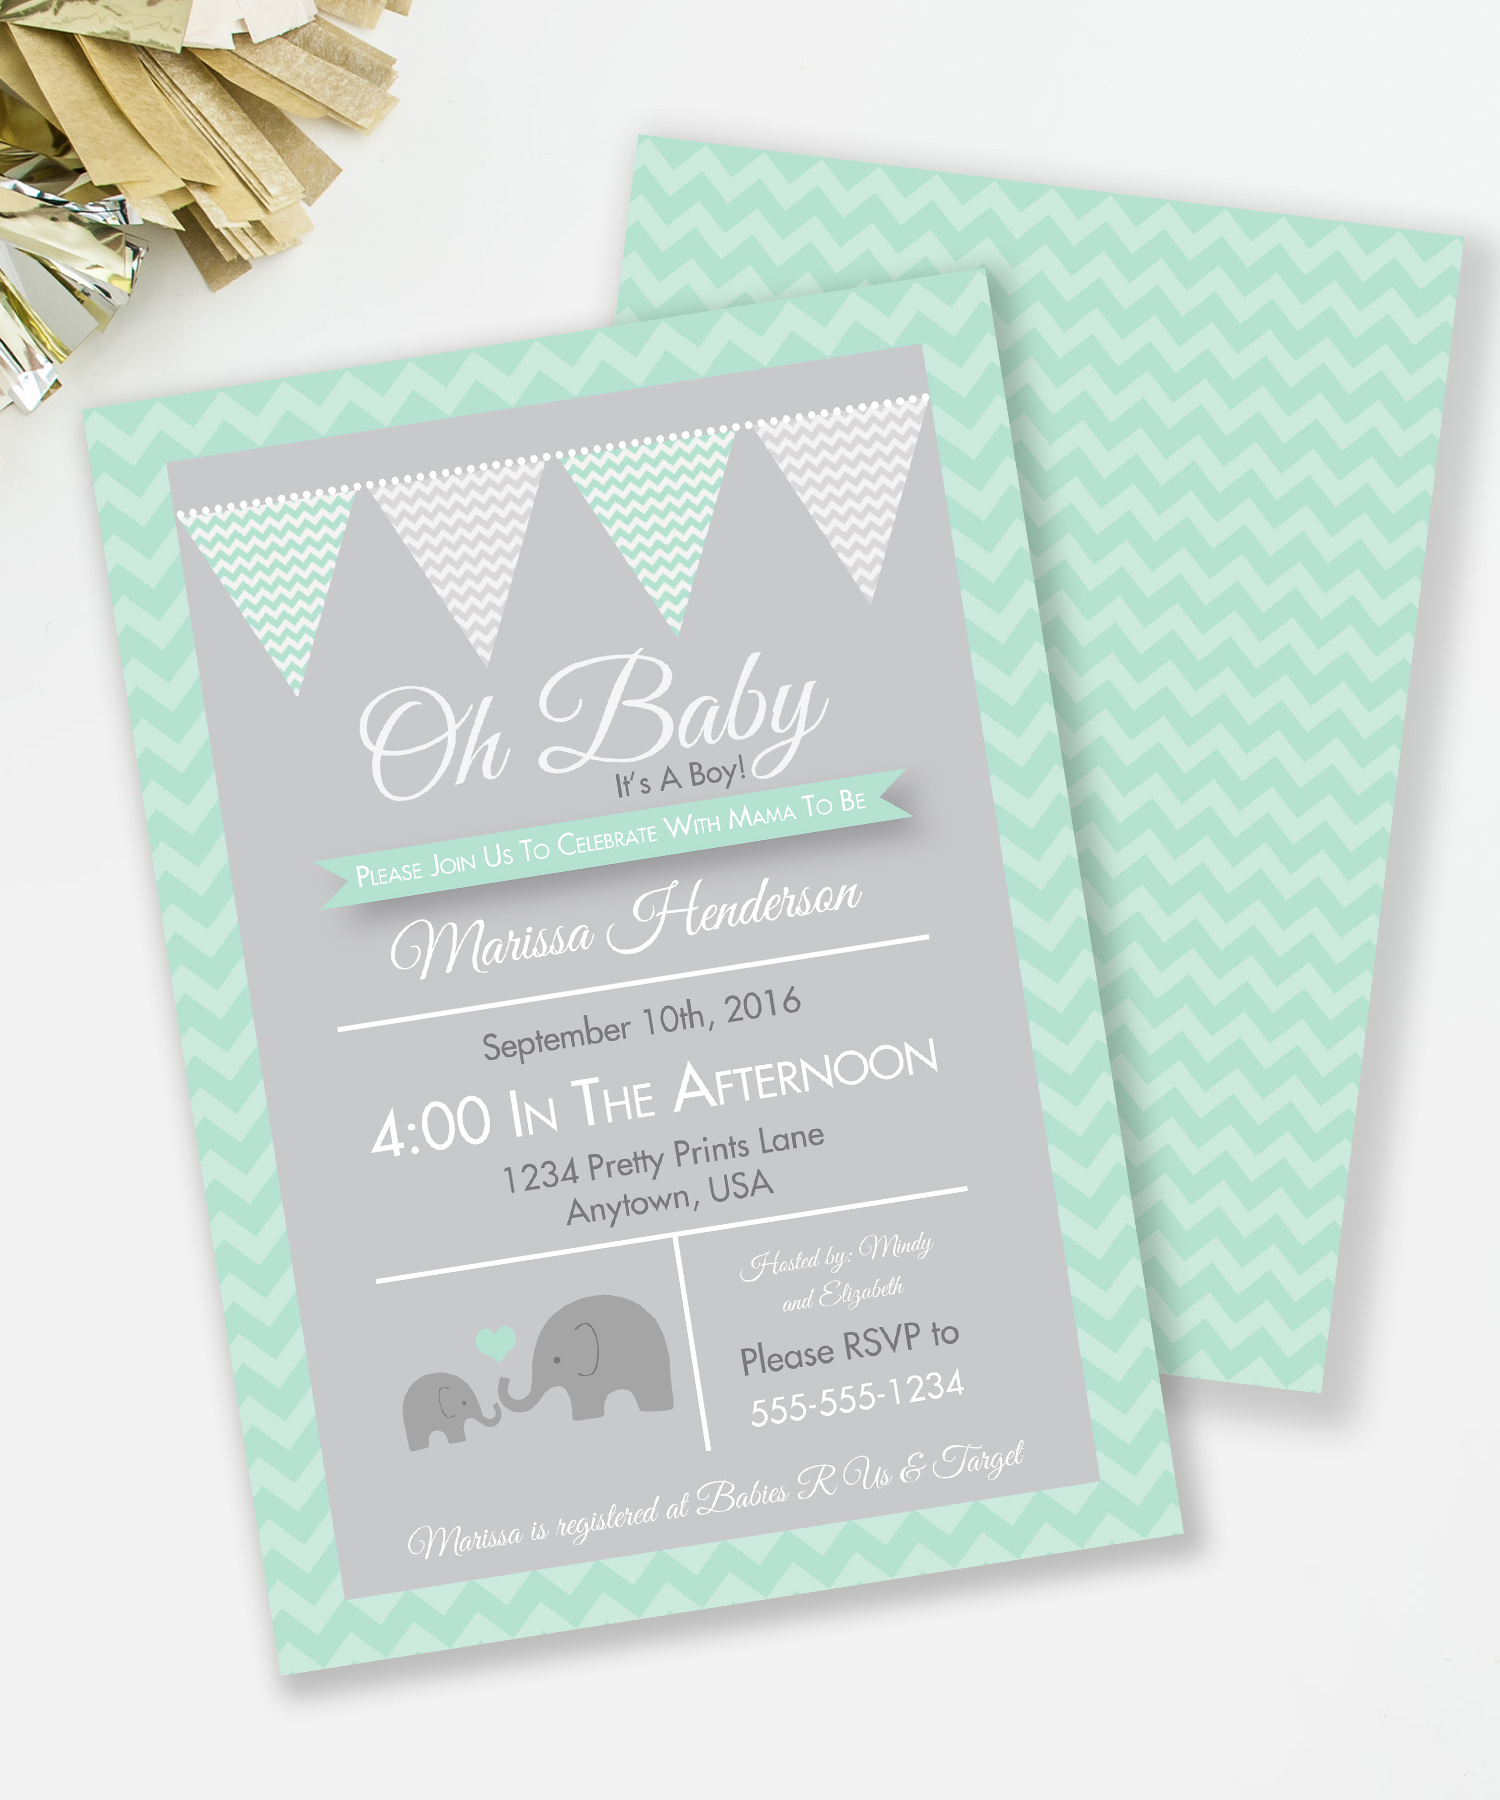 Elephant Baby Shower invite in gender neutral Mint and Gray